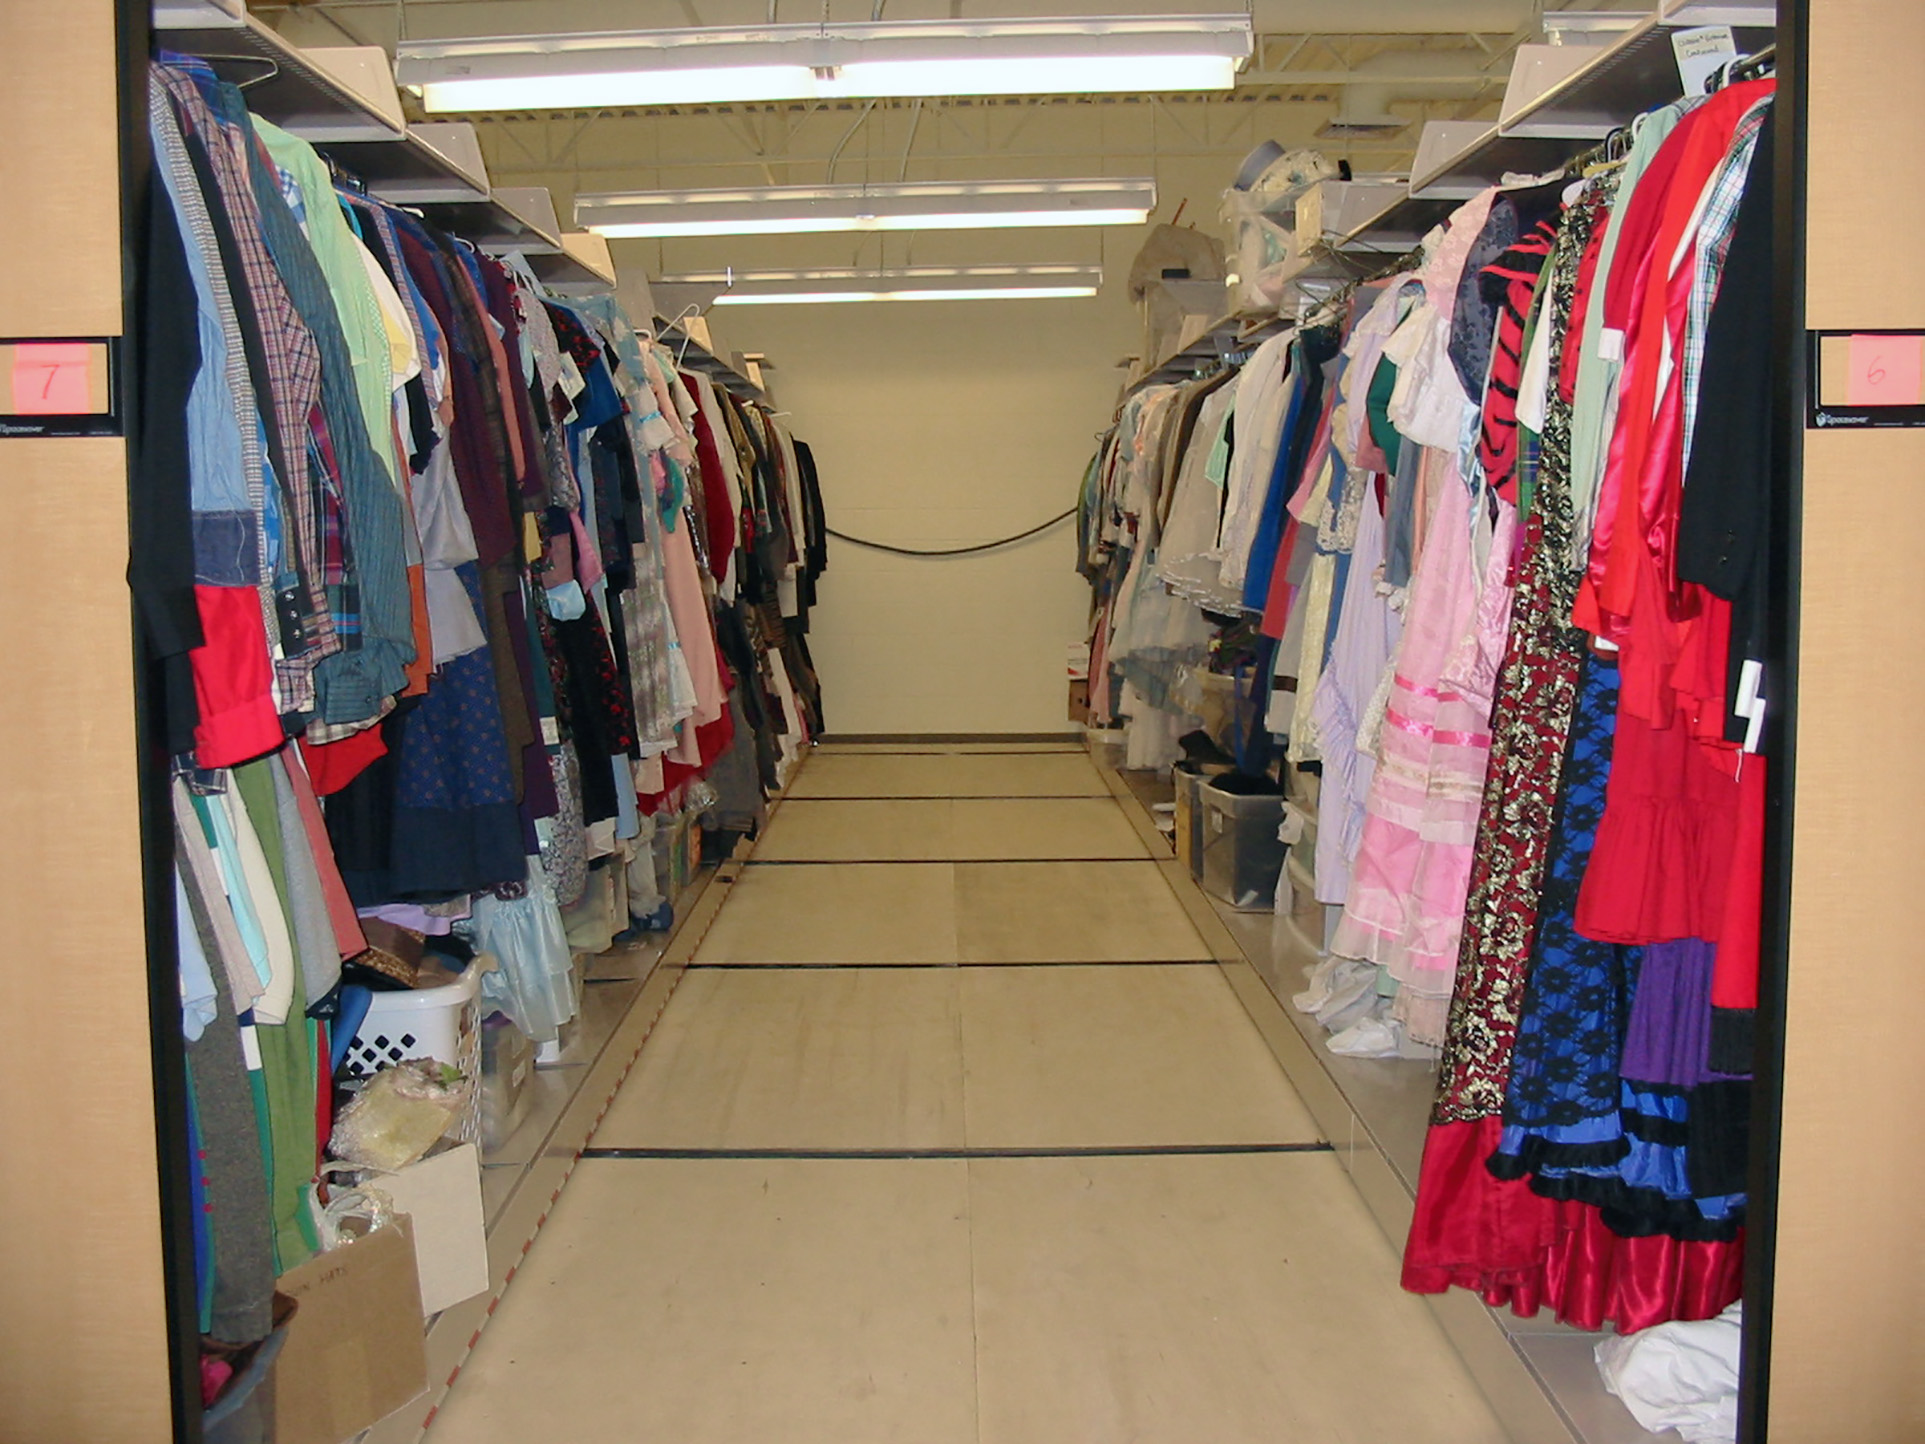 Costume storage on cantilever shelving at Brigham Young University Performing Arts Center